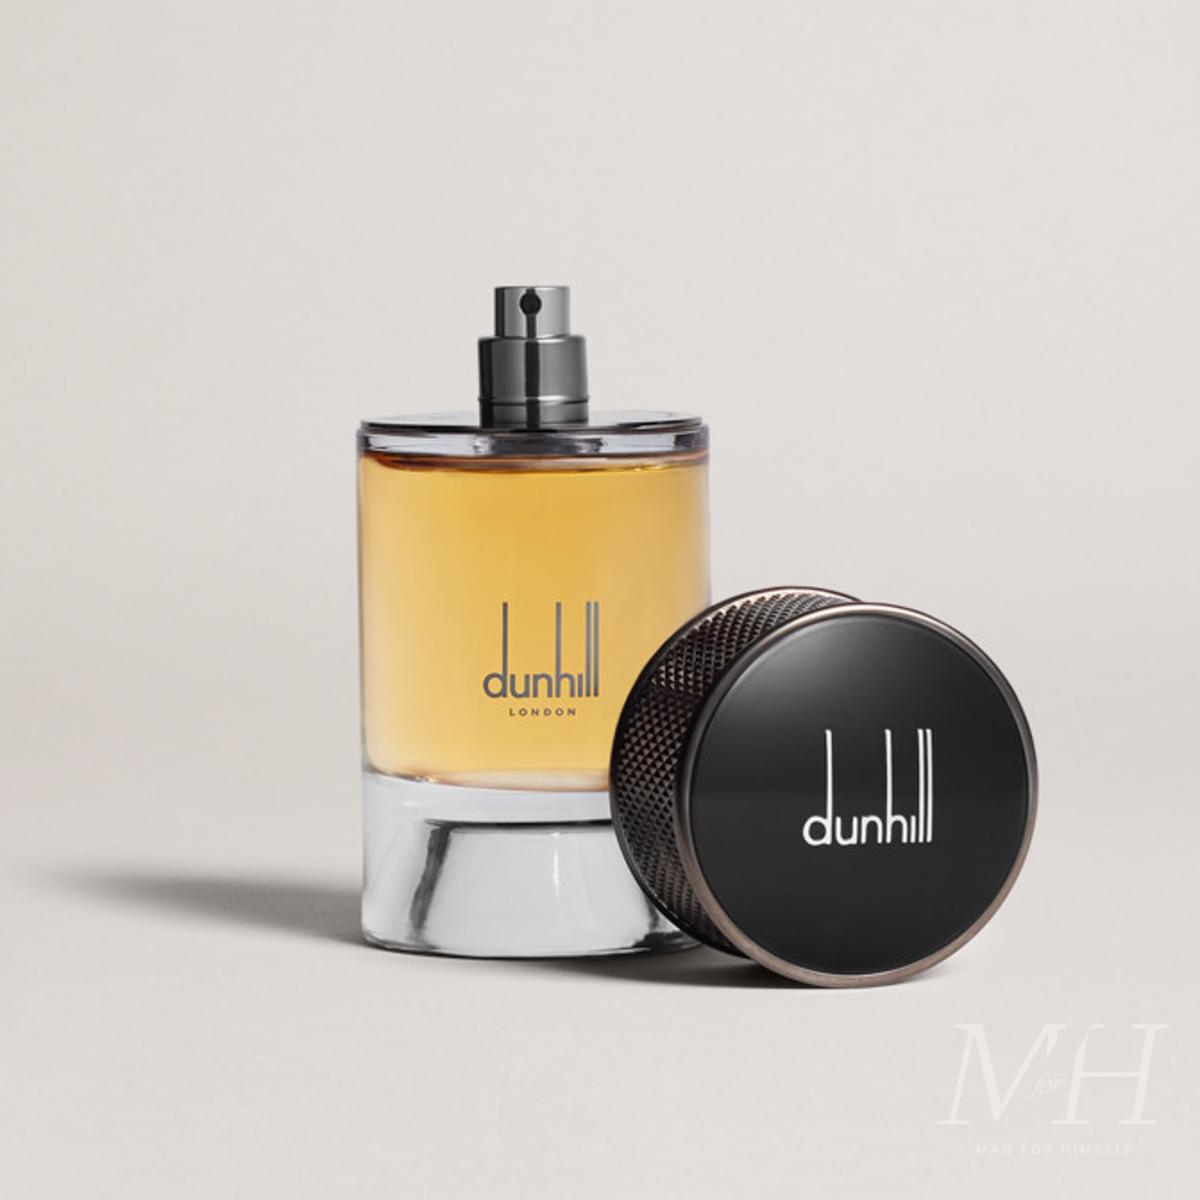 dunhill-indian-sandalwood-fragrance-man-for-himself